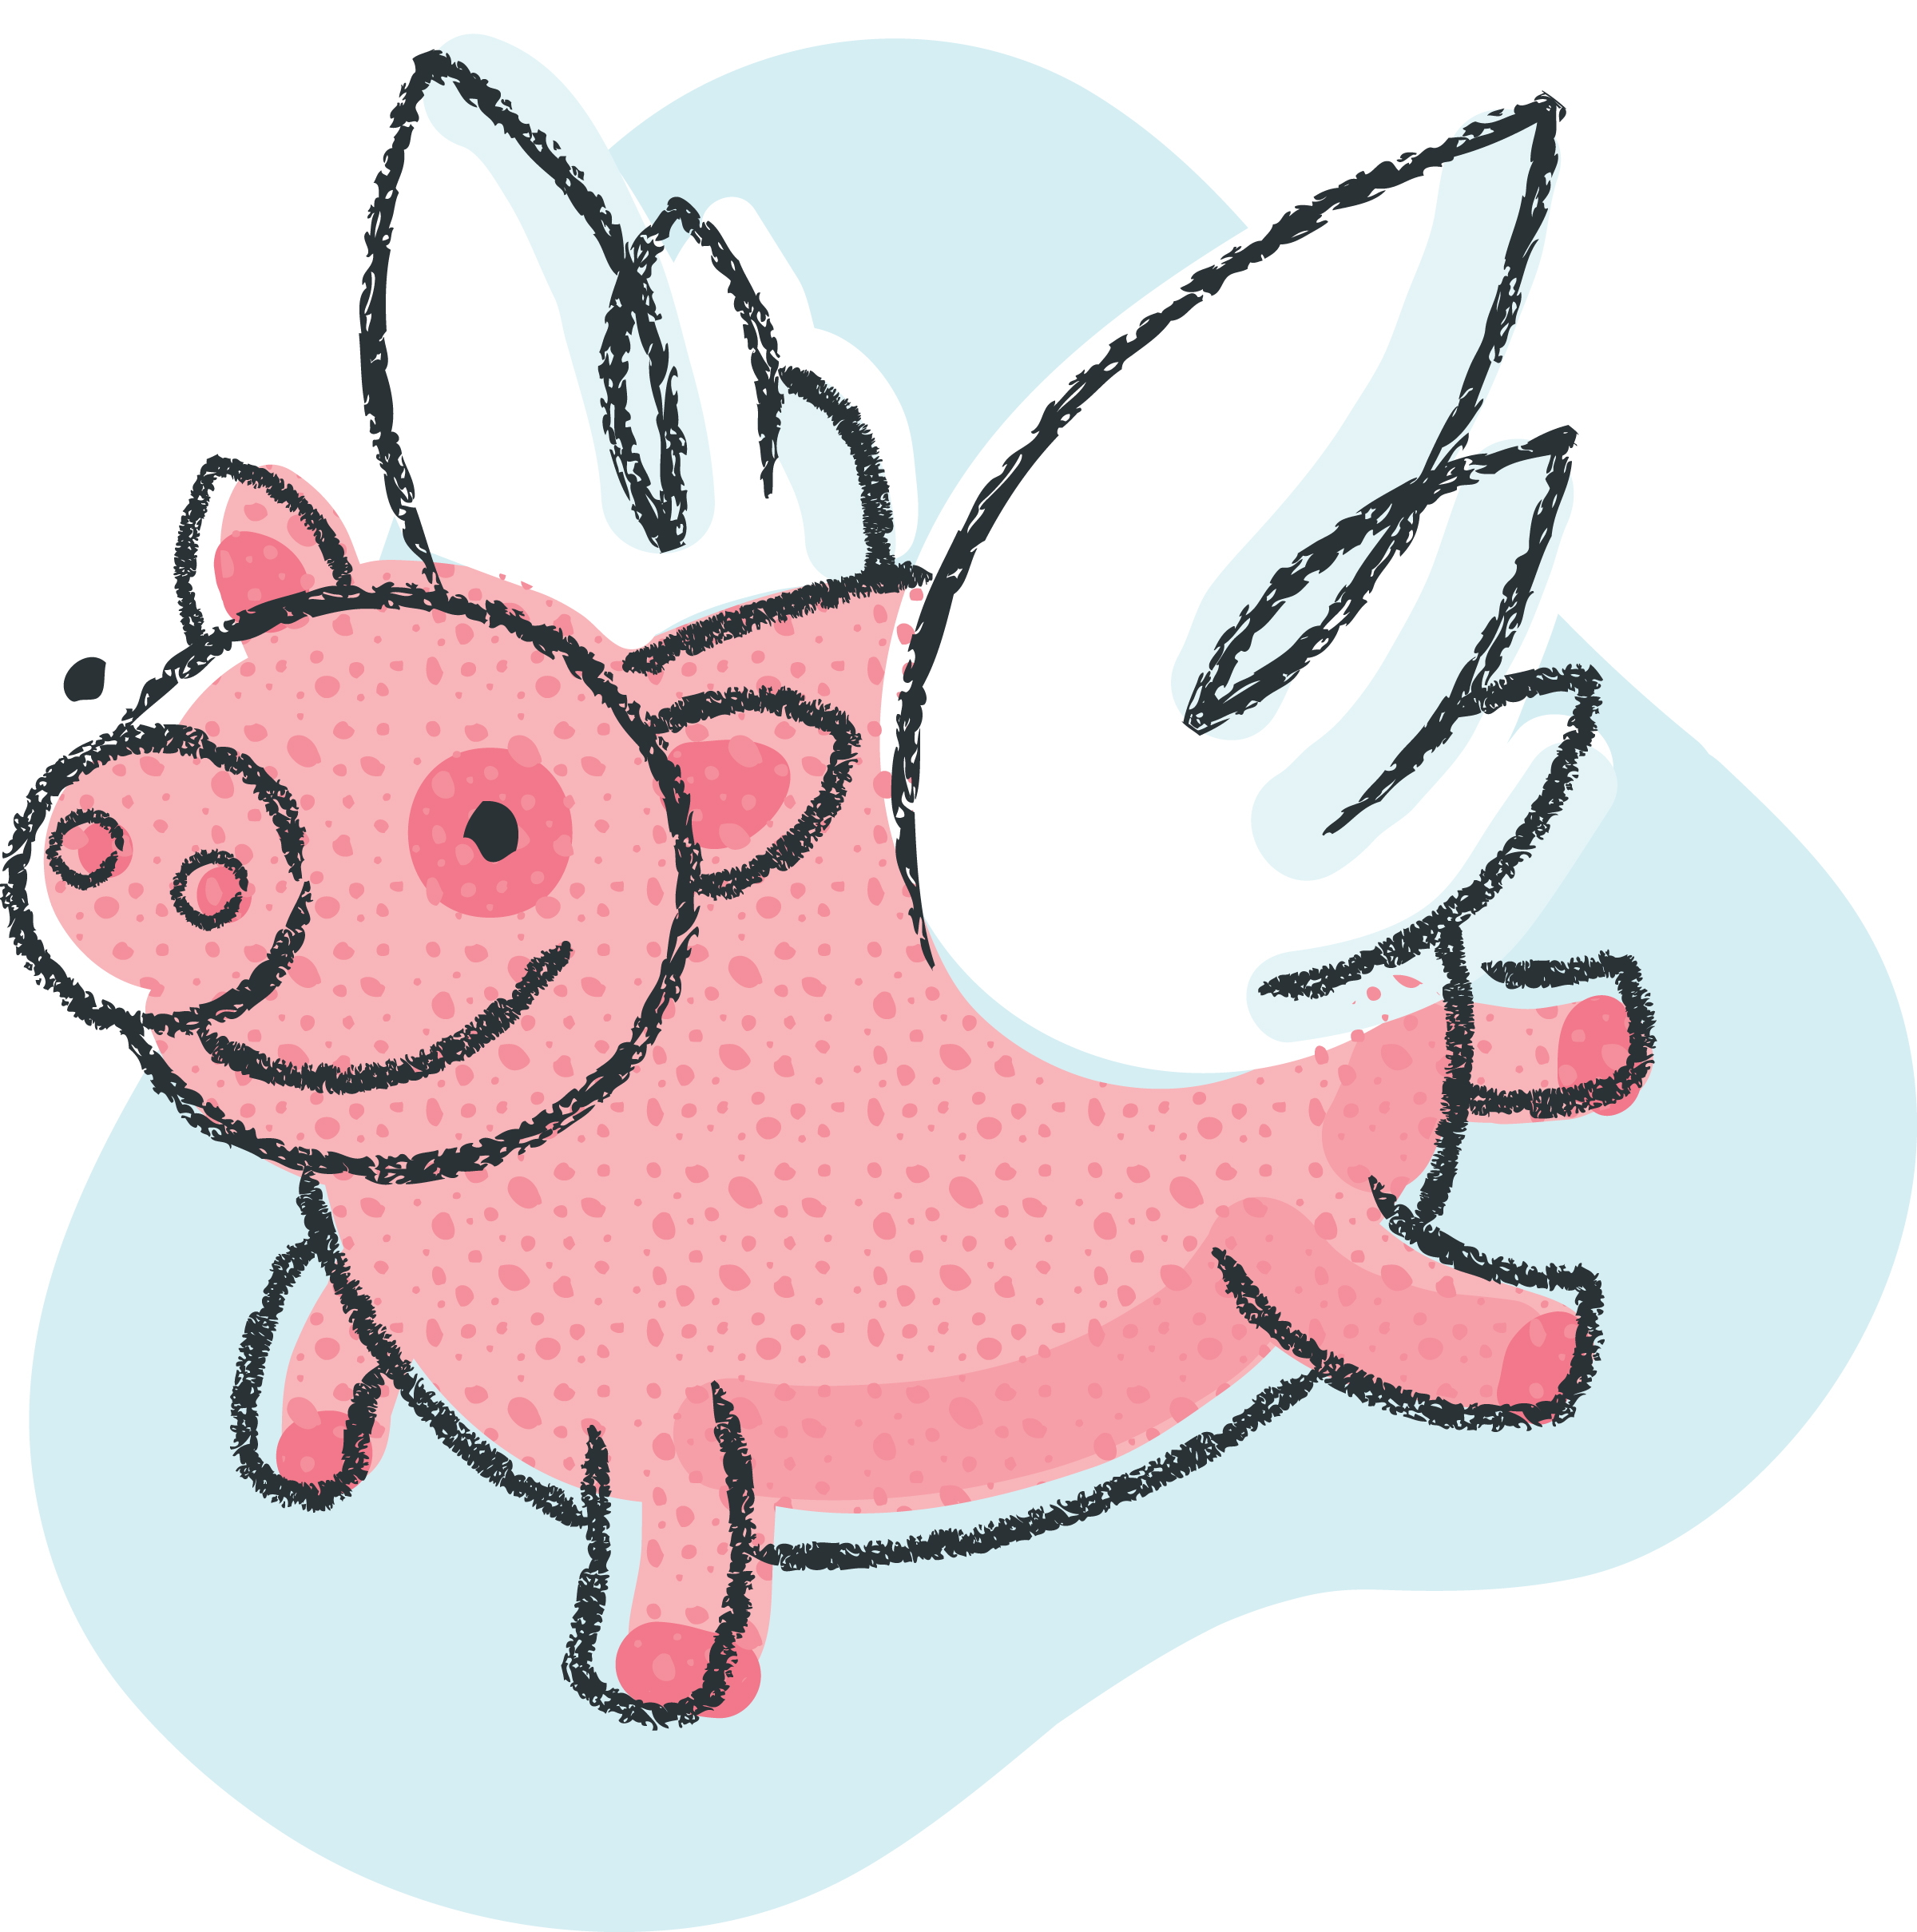 Pig Clip Art Free Download - Free Clipart Images